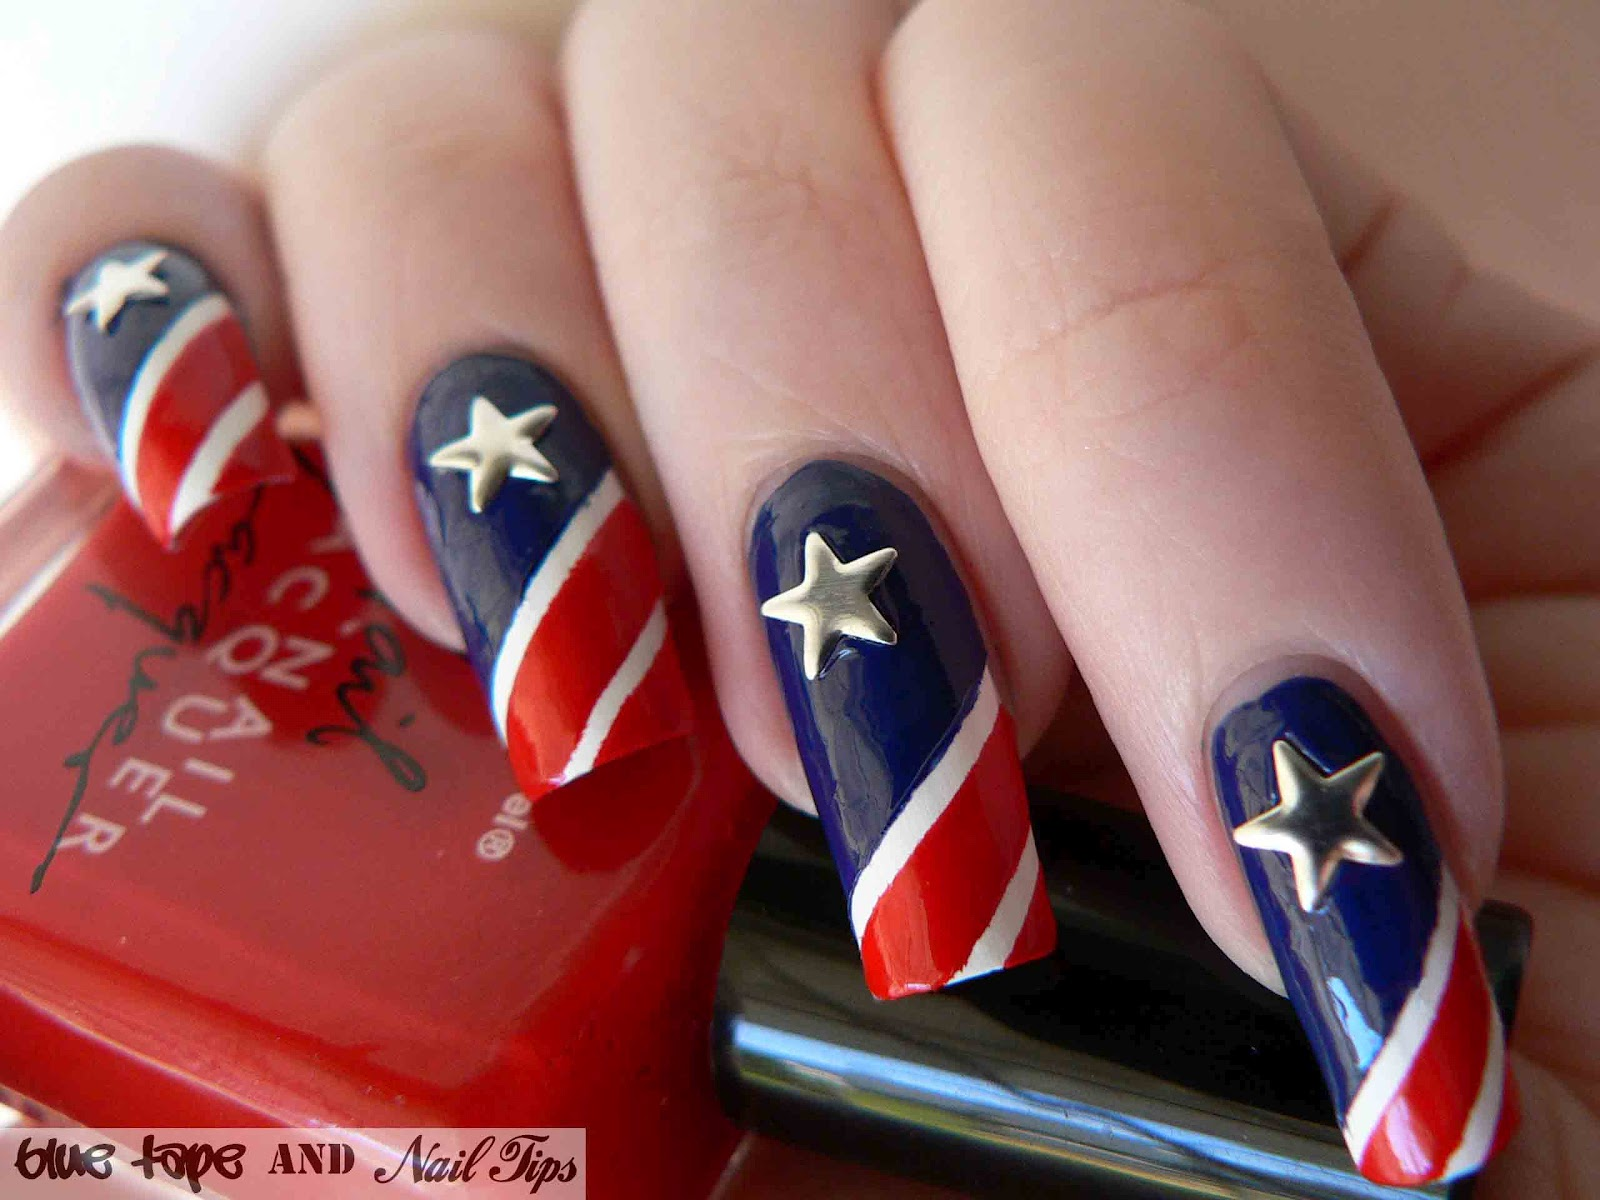 Blue tape and nail tips stars and stripes the stars used for this nail design were nail studs from kiss called nail artist metallic that were purchased at walgreens prinsesfo Gallery